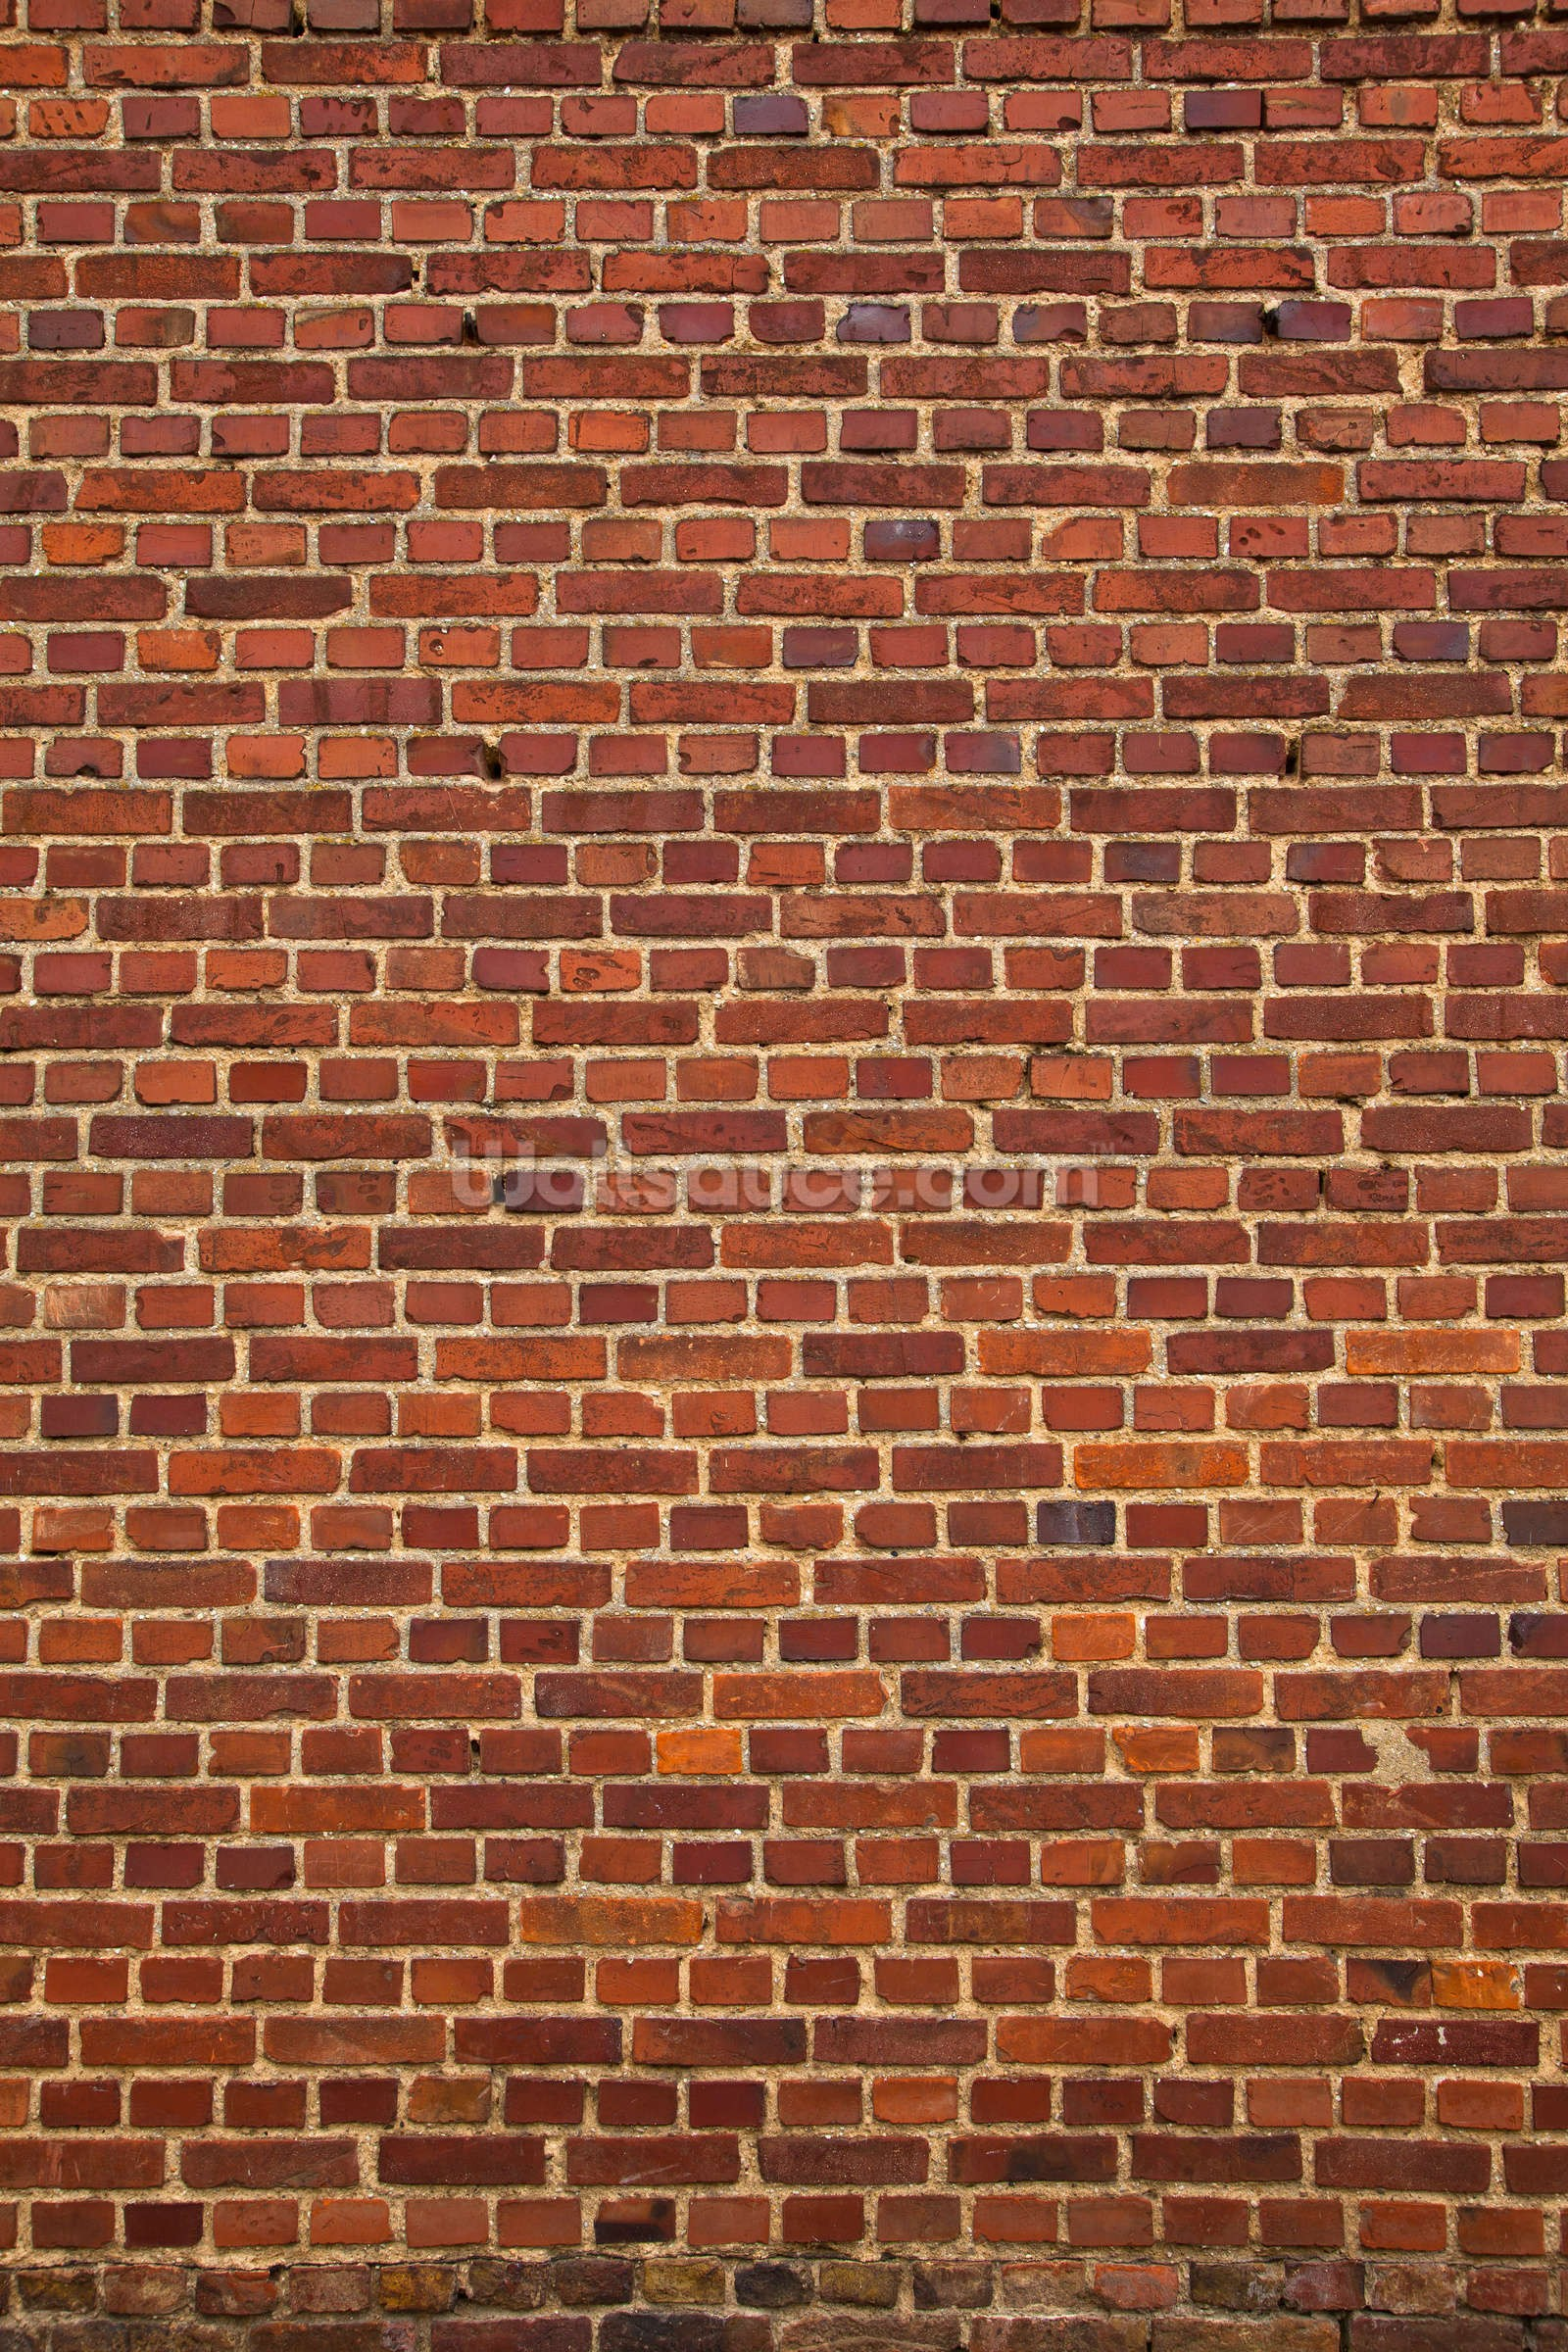 Brick wallpaper ·① Download free cool backgrounds for ...